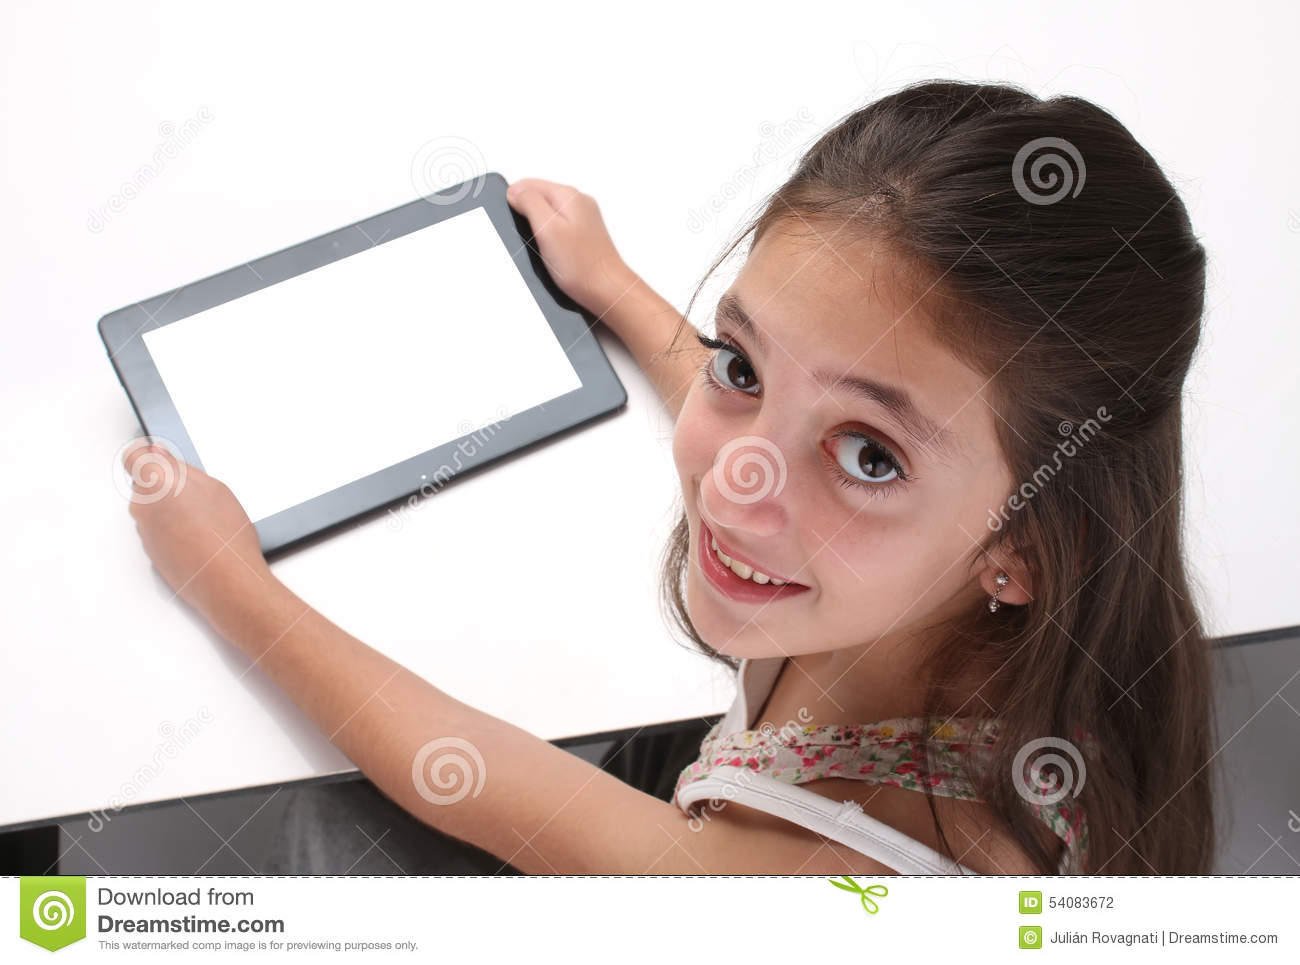 Ist teen using computer but goodie